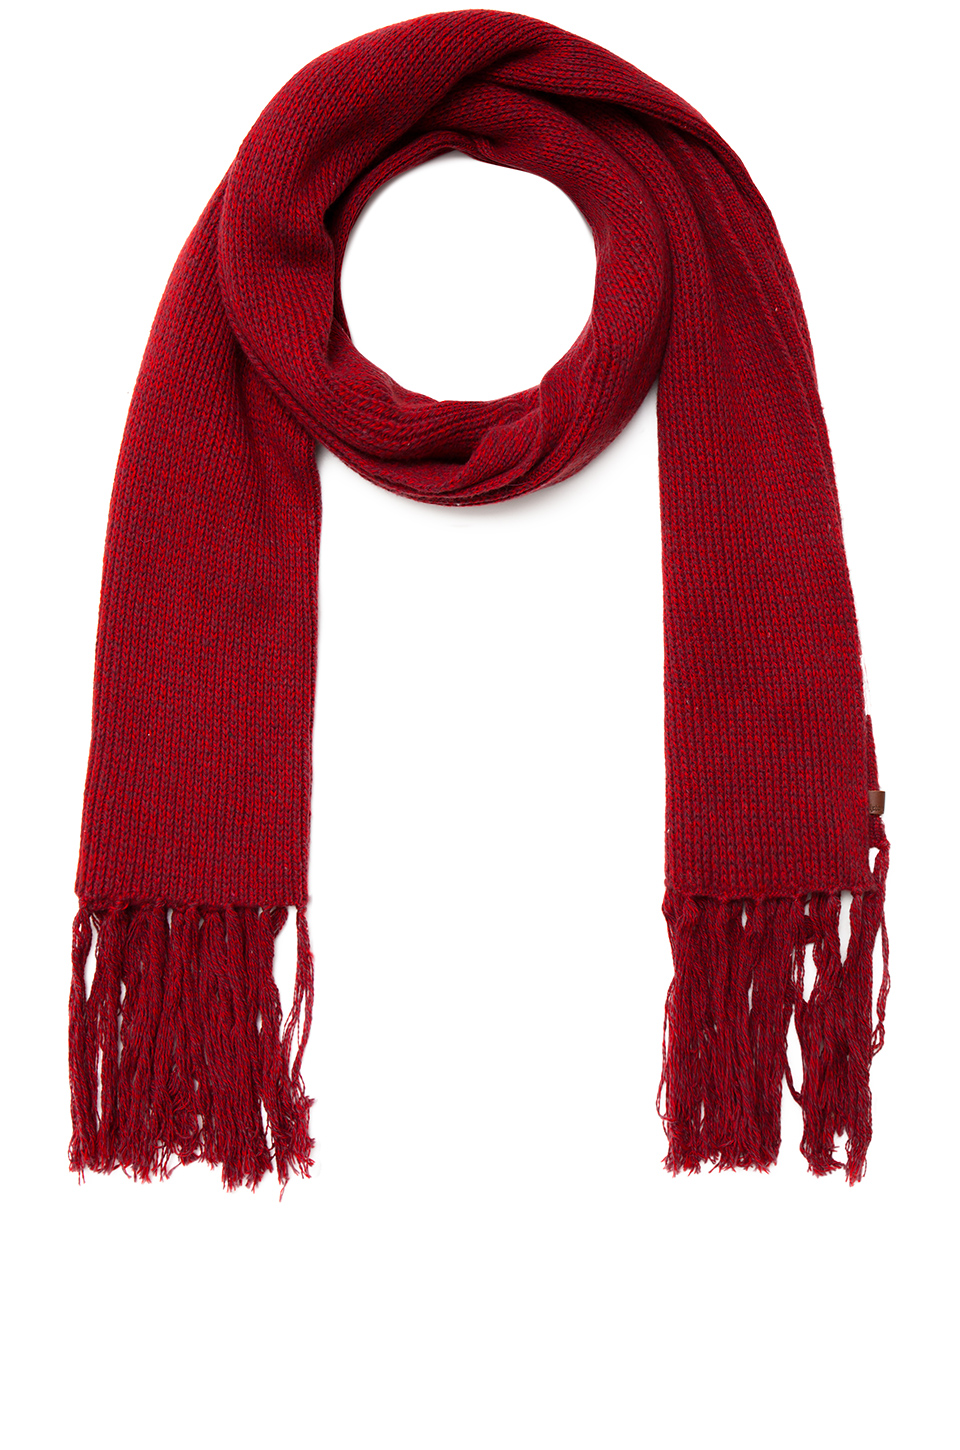 BRIXTON 'ELIAS' RED SCARF